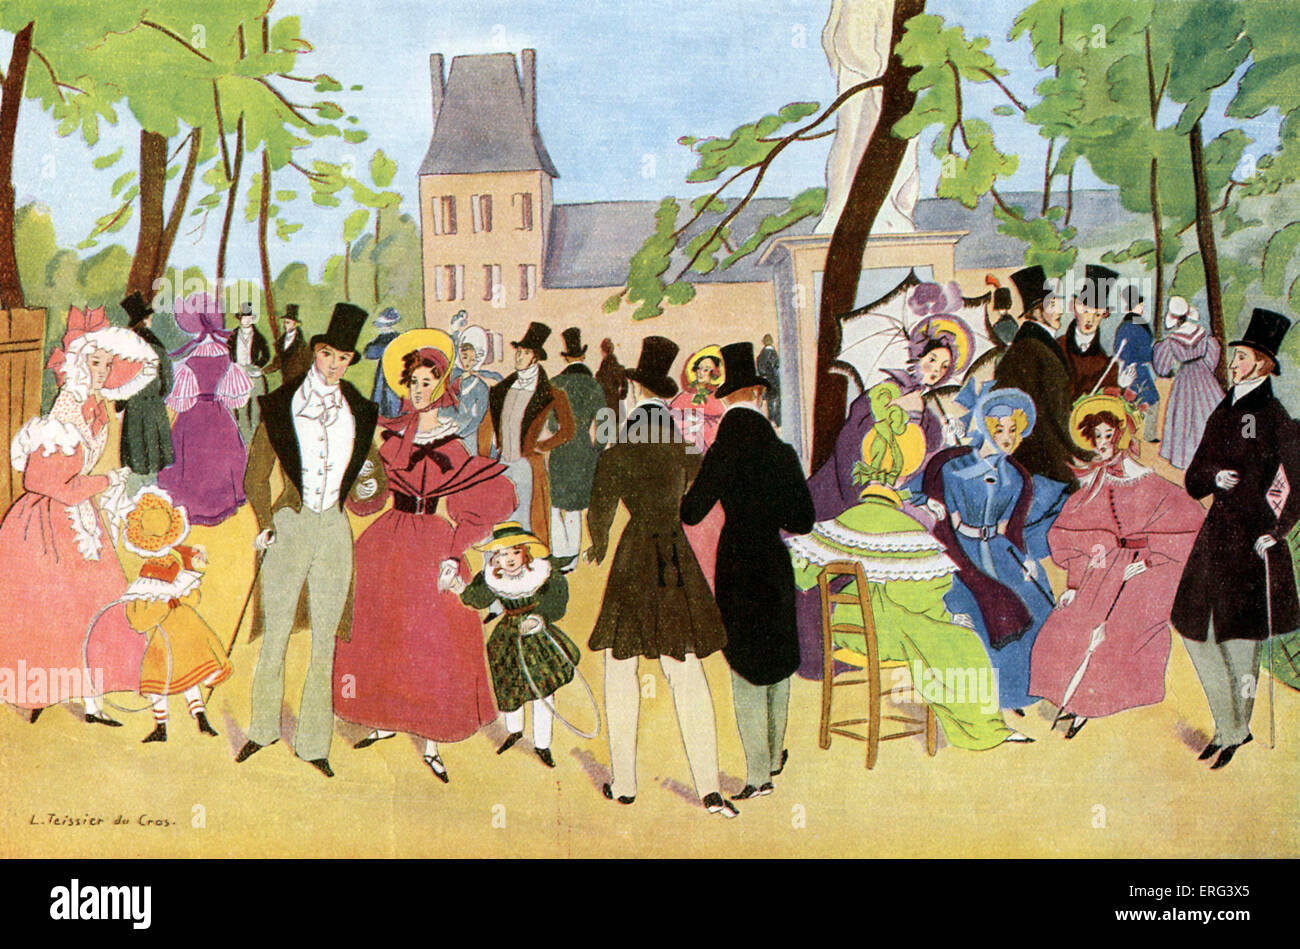 Strolling in the park in Paris, France in 1831.  Illustration from 1930 by L. Teissier du Cros. Unable to trace Stock Photo